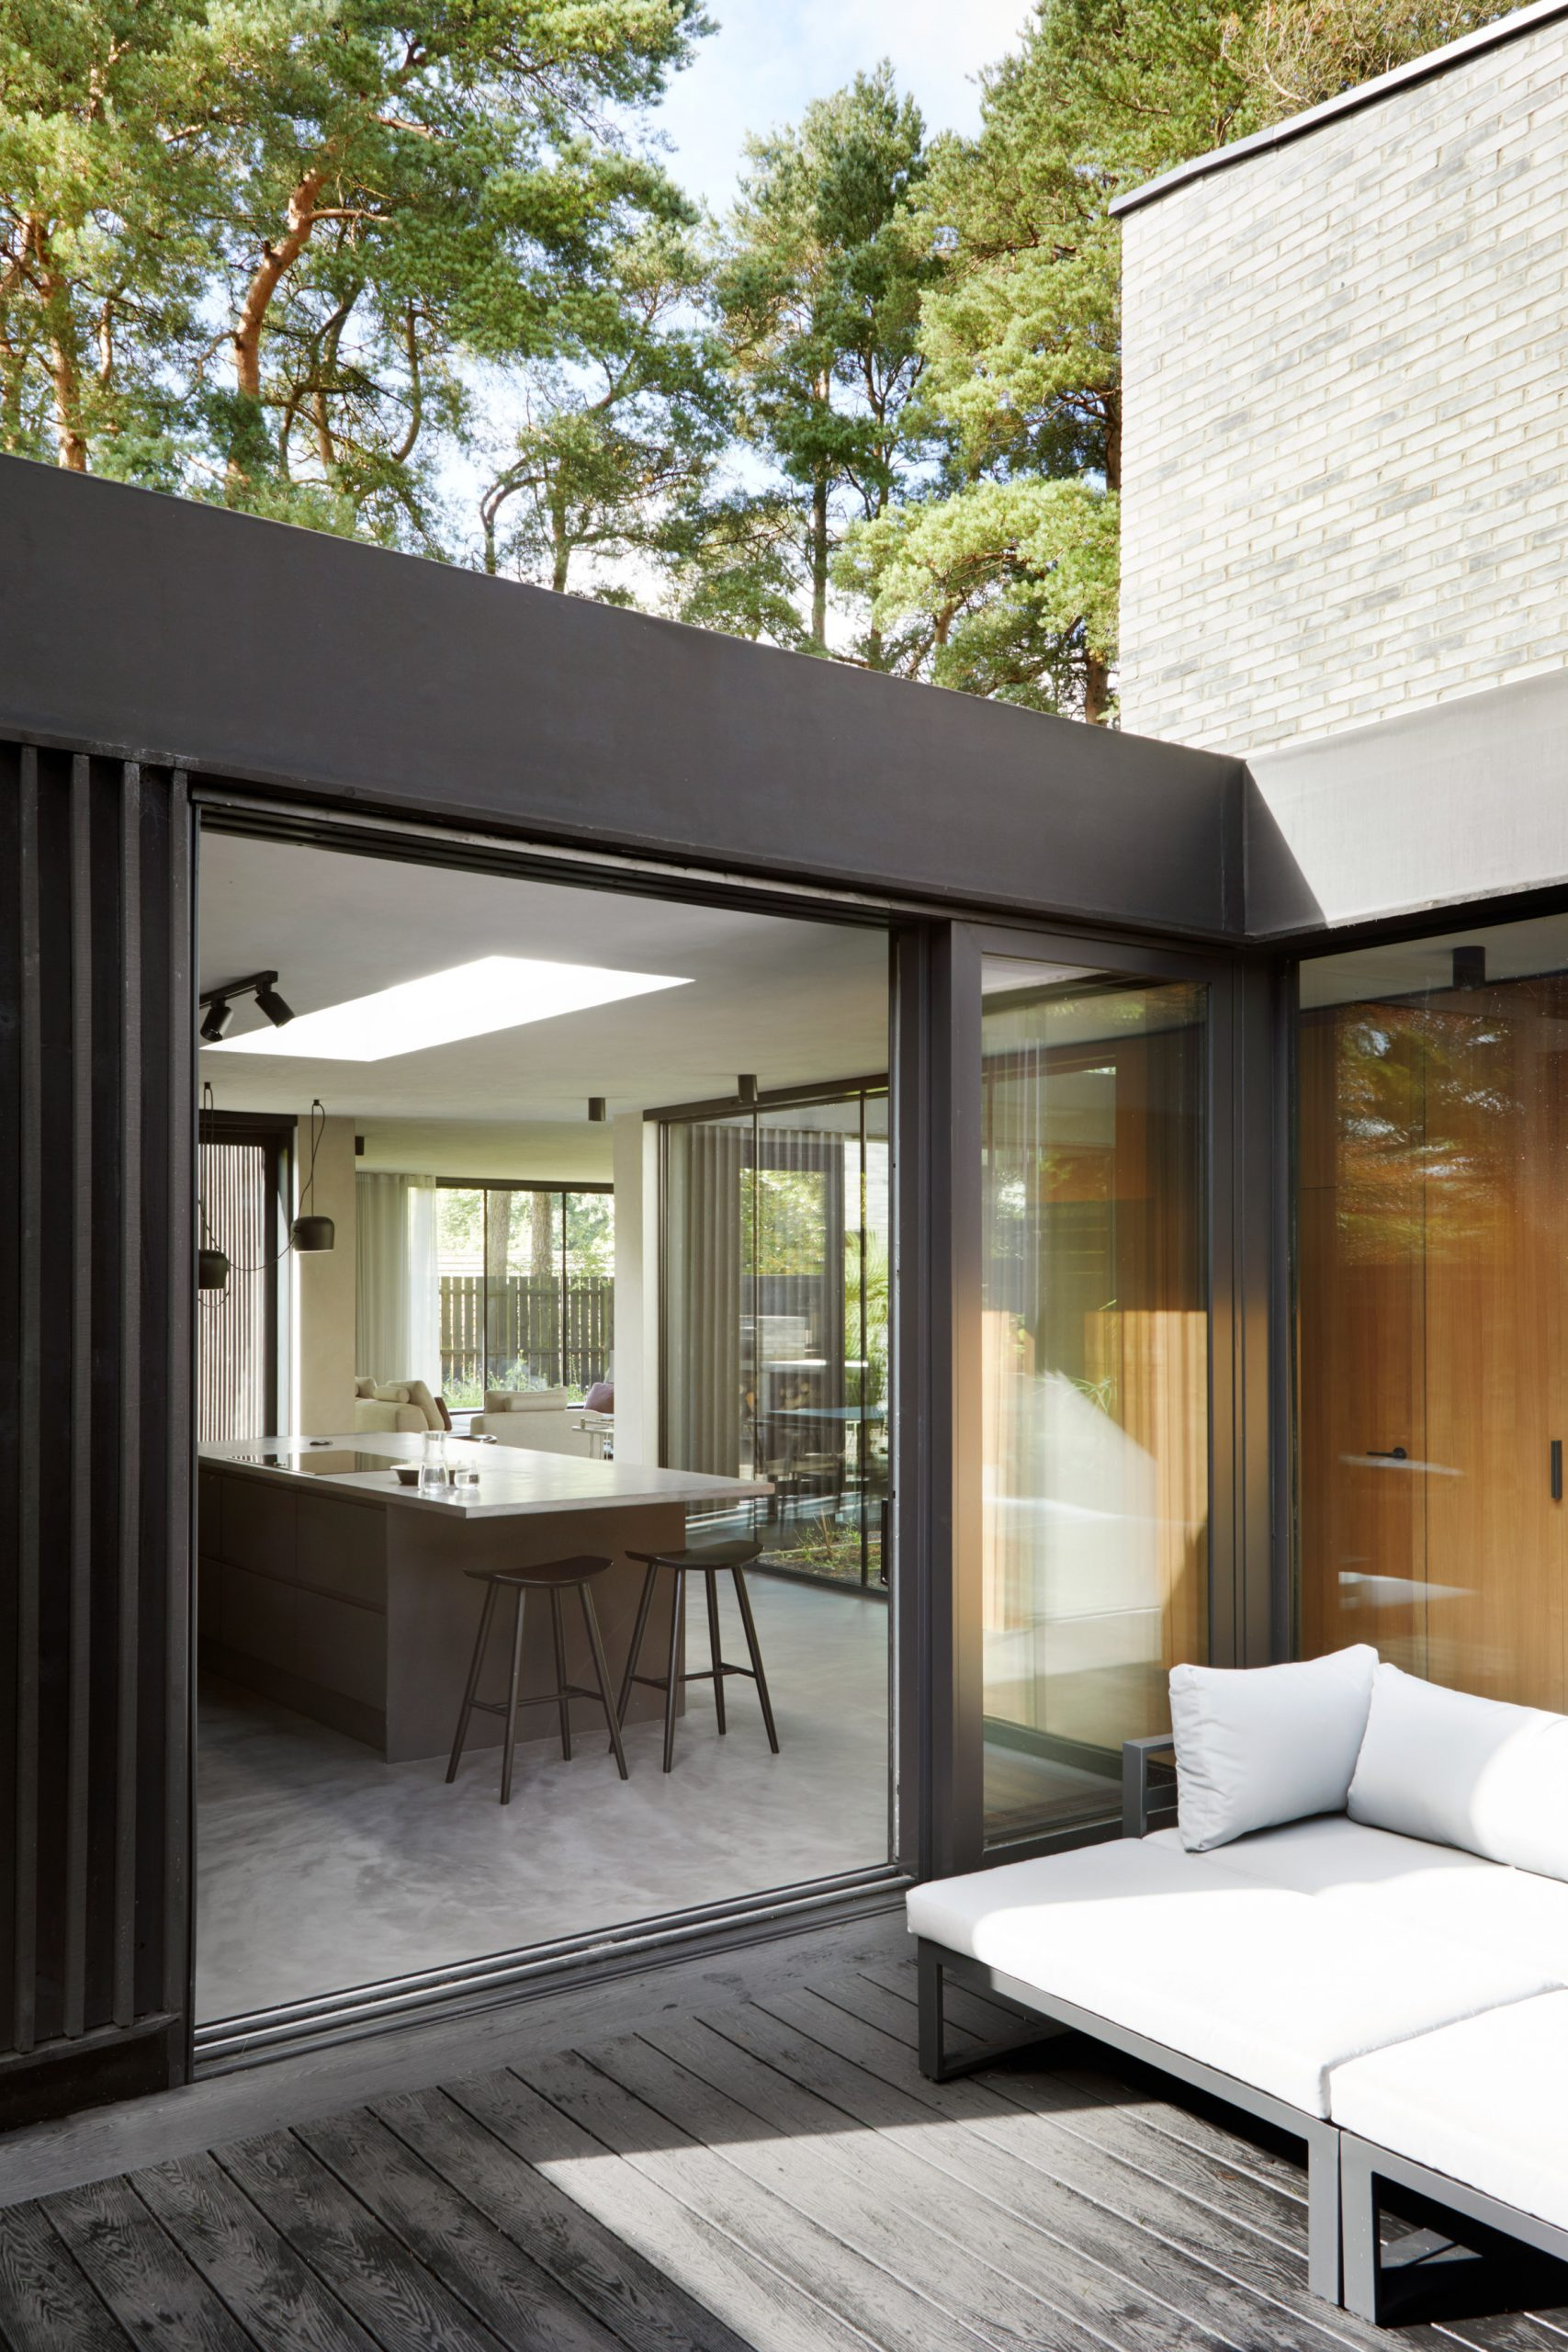 A courtyard leading into the kitchen of a house in Glasgow